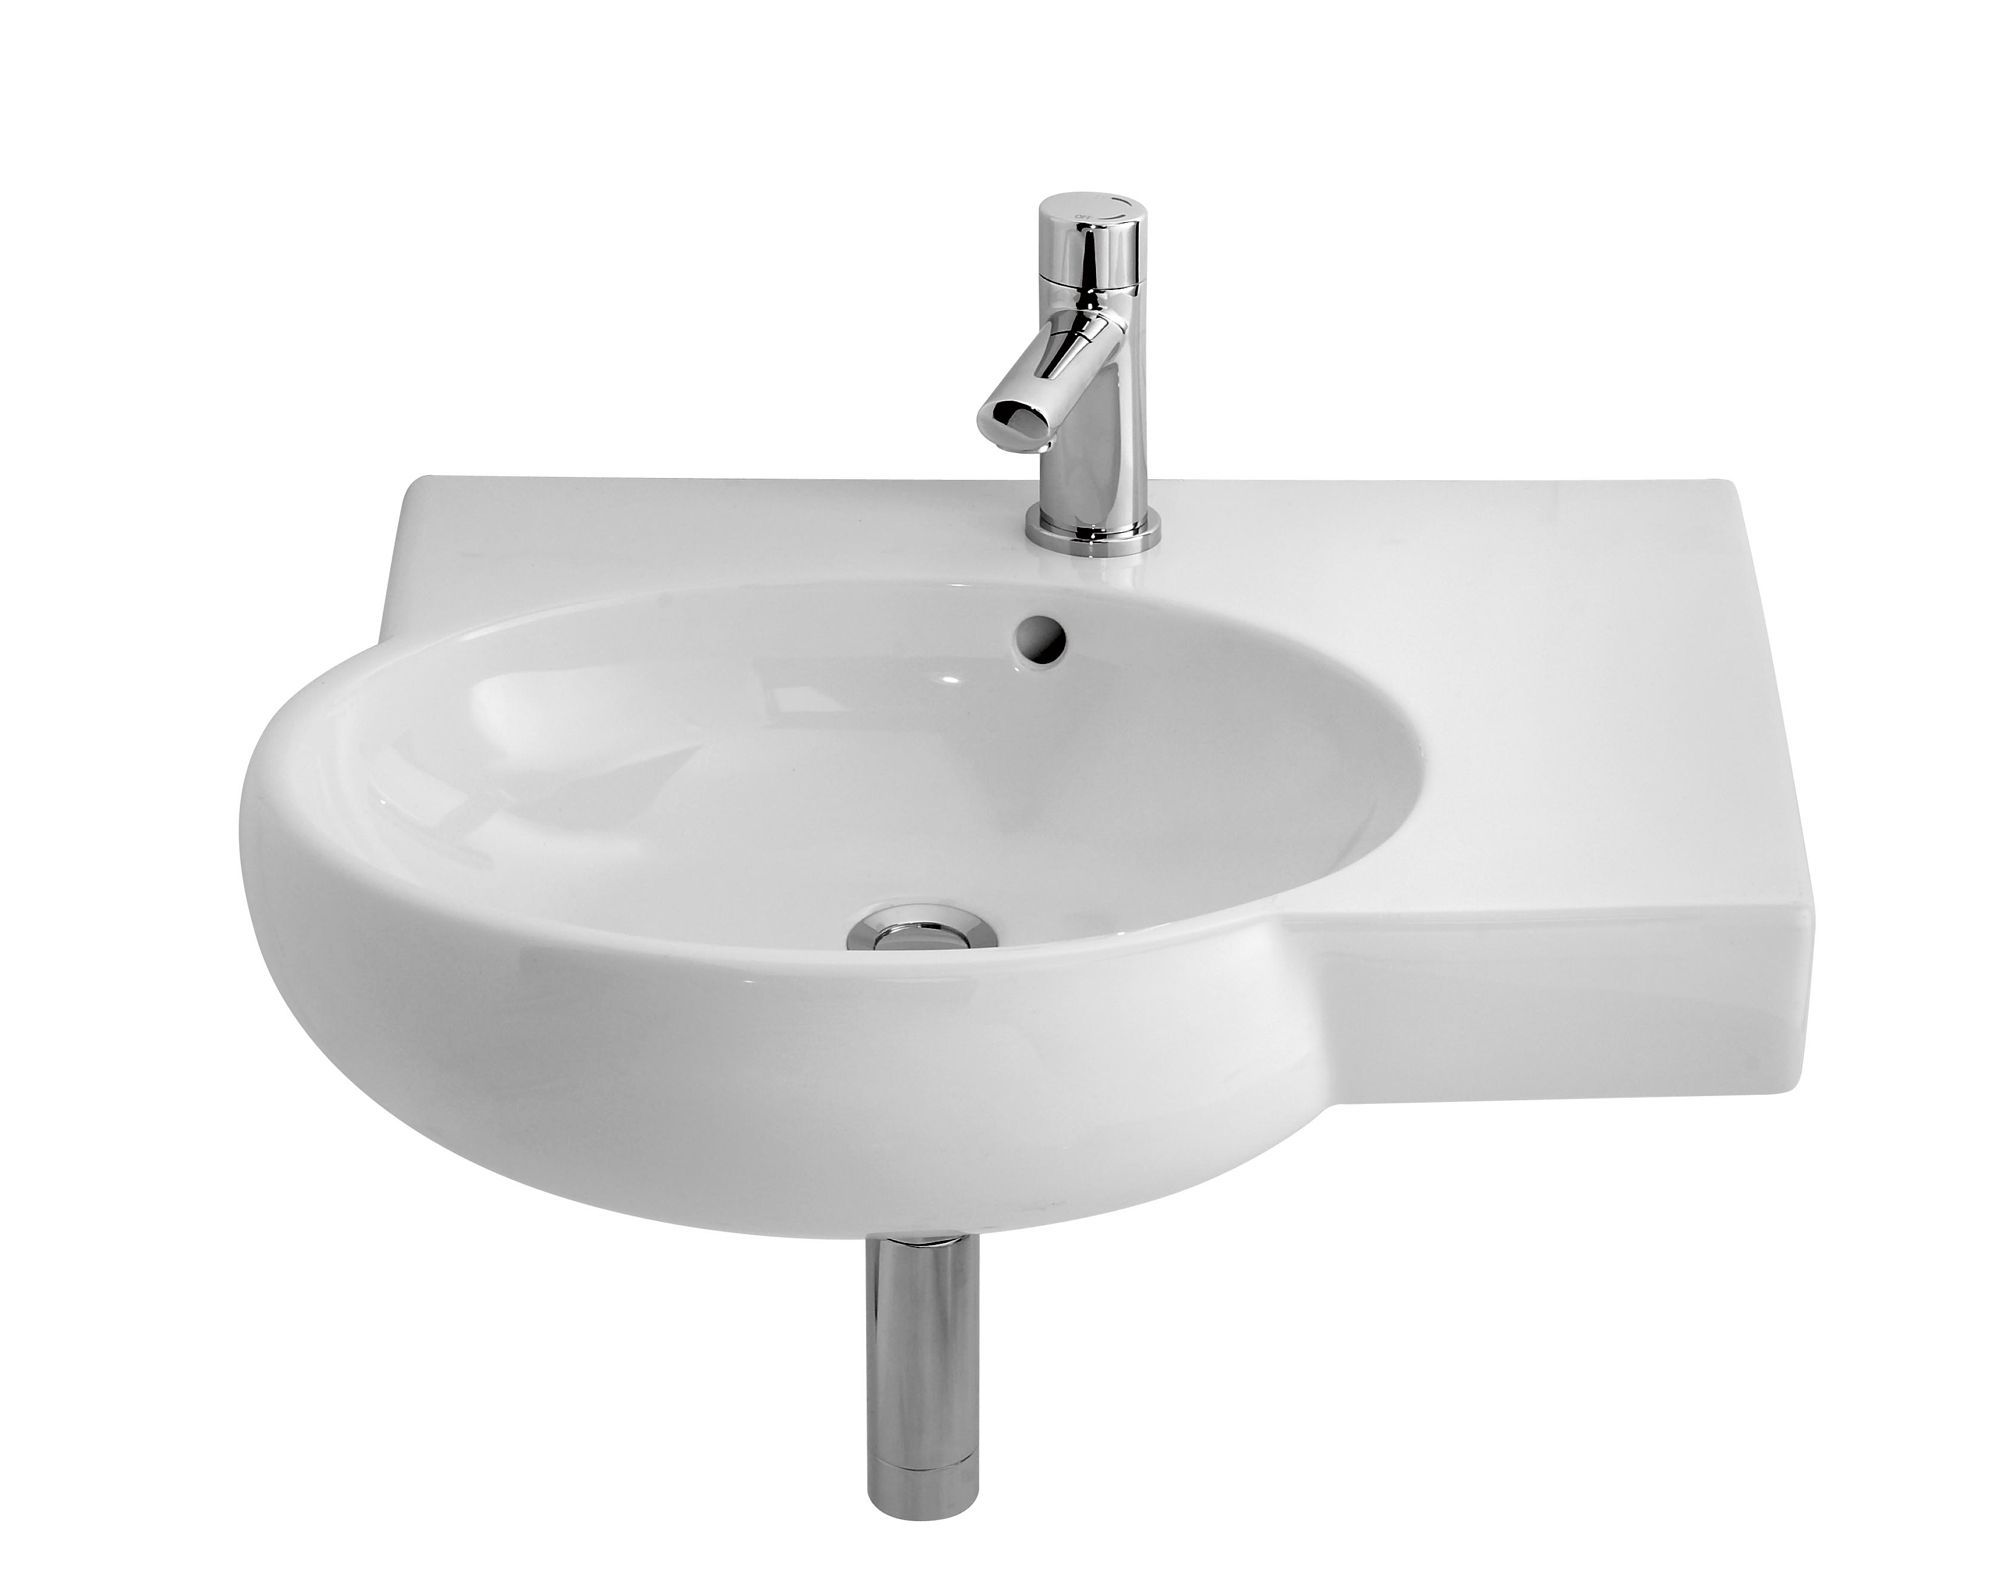 Bathroom Sinks B&Q cooke & lewis eleanor wall mounted cloakroom basin | clearance